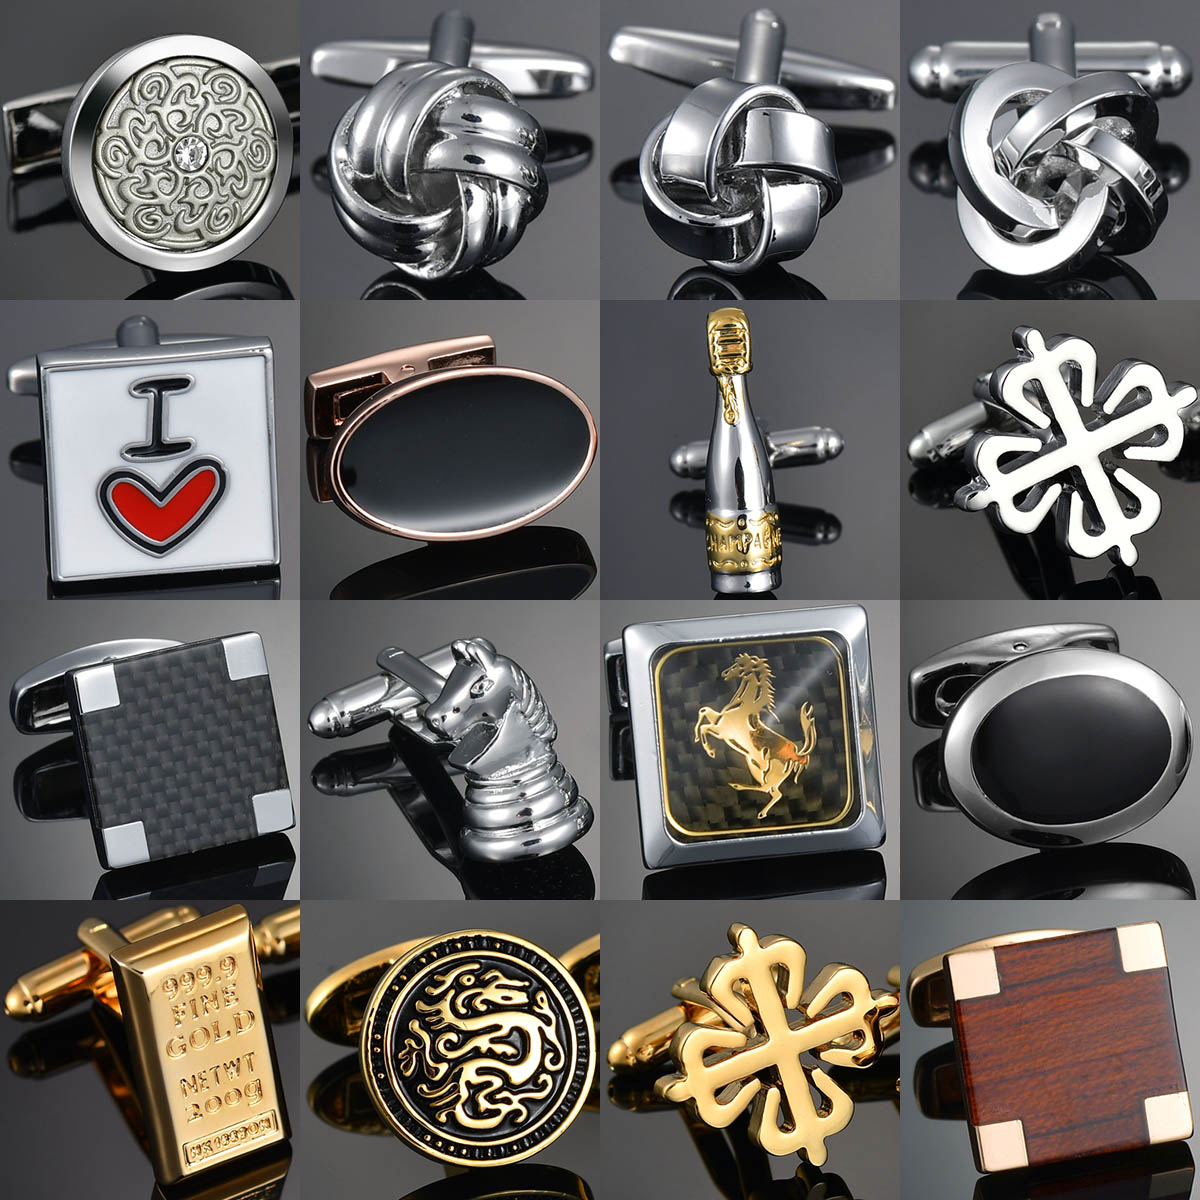 New Arrive Shirt Cufflinks Festival Christmas Cuff Links For Wedding Party FashionWooden/Knot/Dragon Men Sleeve Shirt Cufflinks